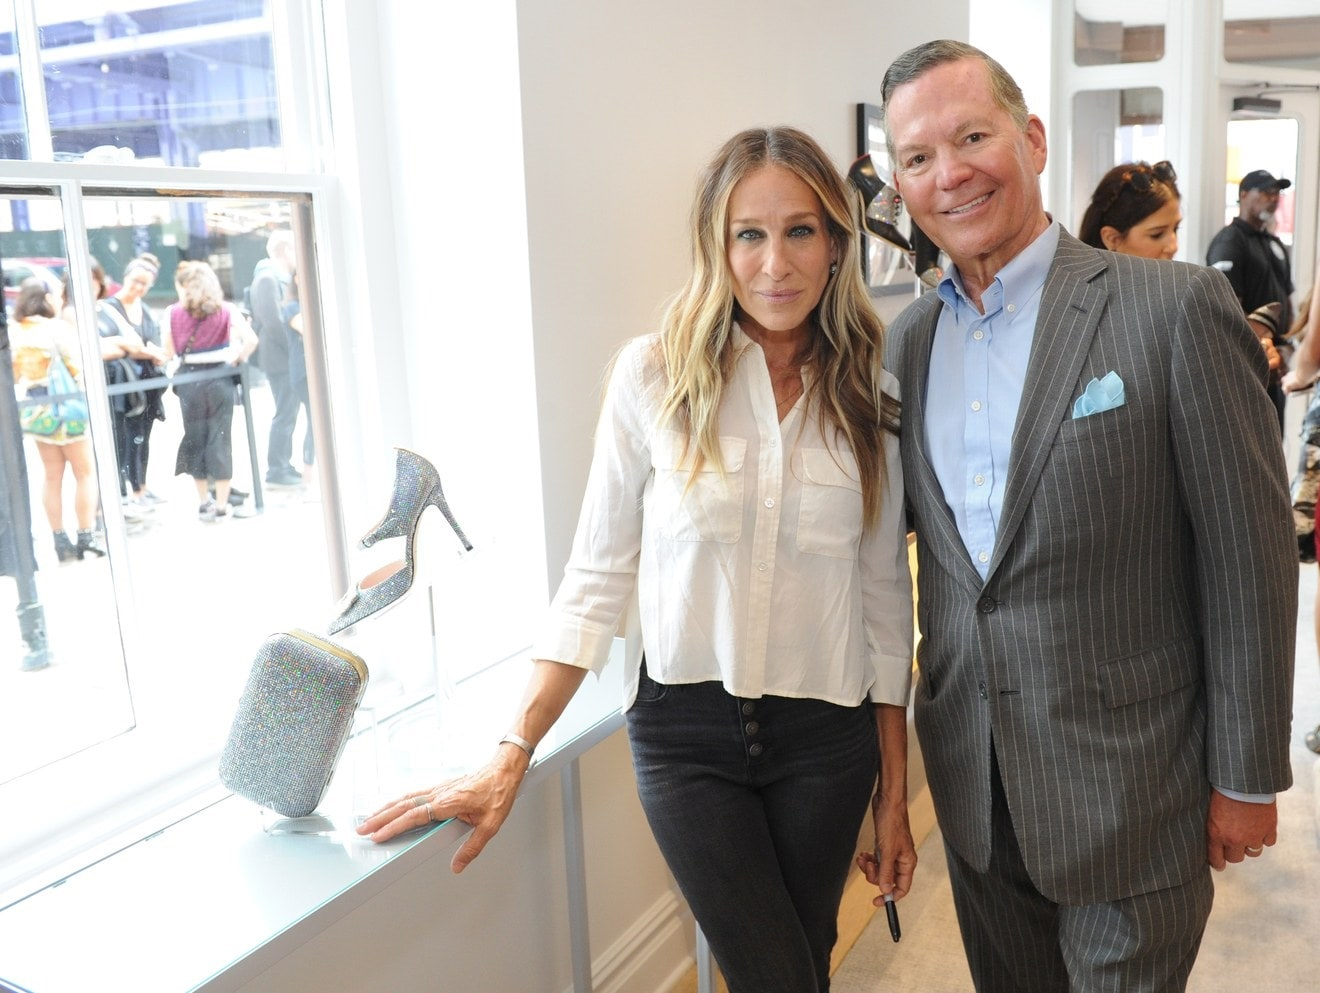 SJP by Sarah Jessica Parker NYC shop opening with George Malkemus, the CEO of Manolo Blahnik